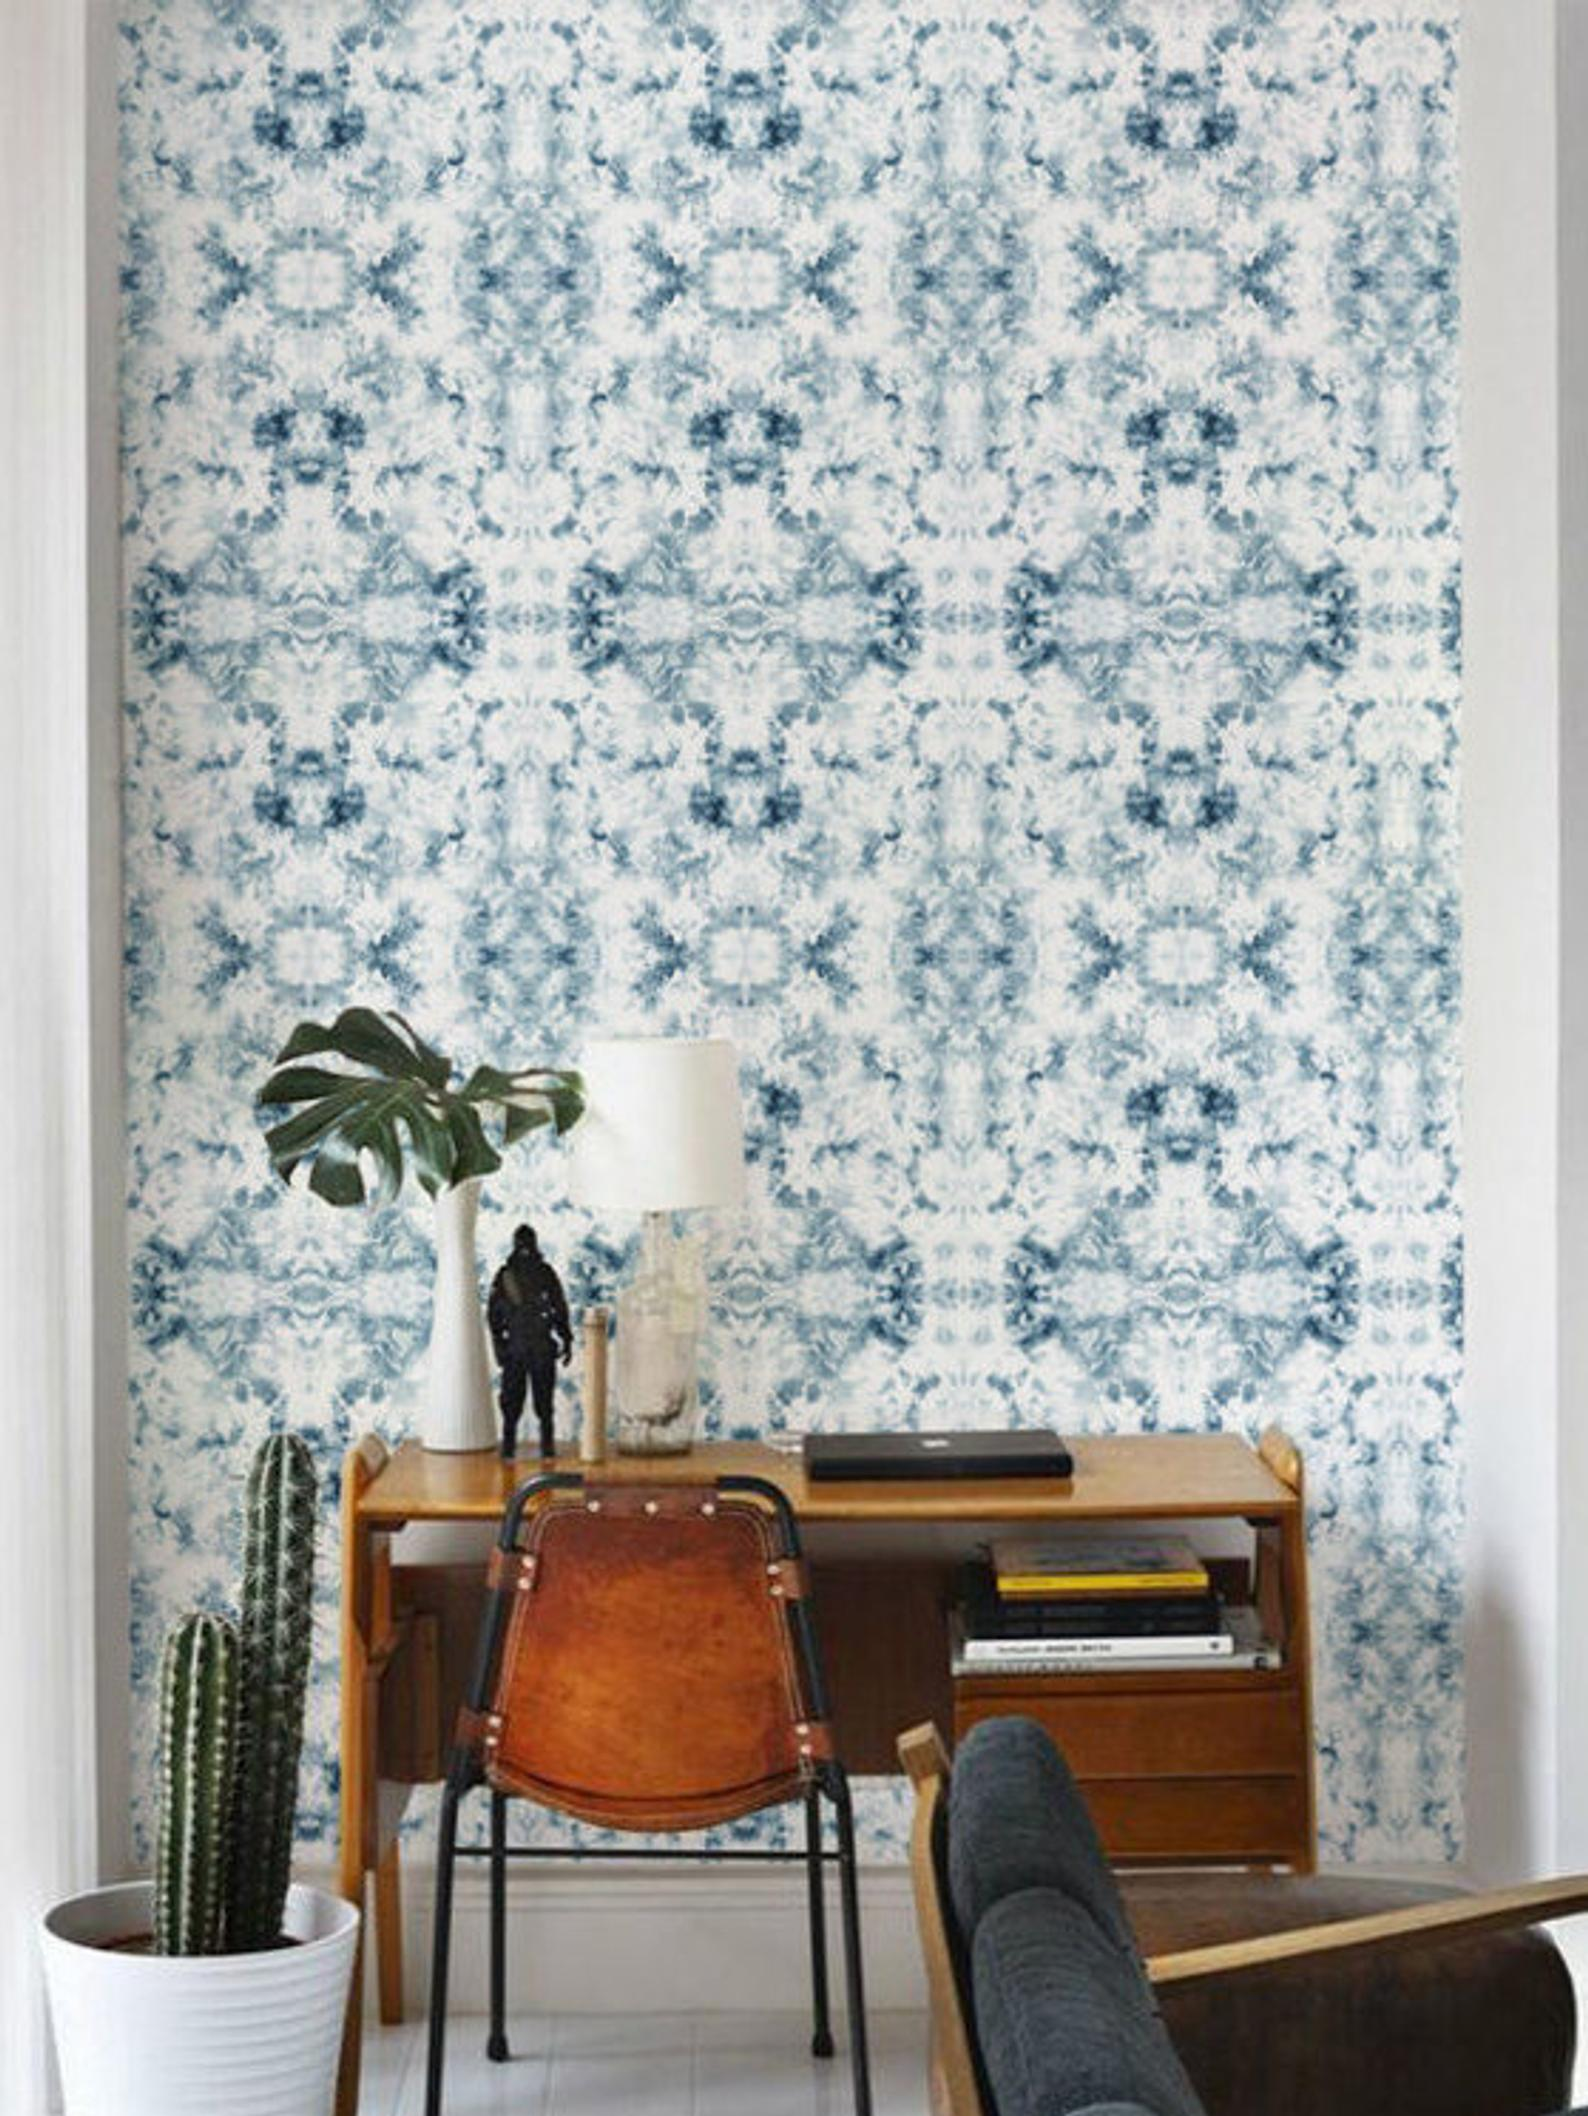 Abstract blue and white pattern wallpaper in a mid-century inspired room.